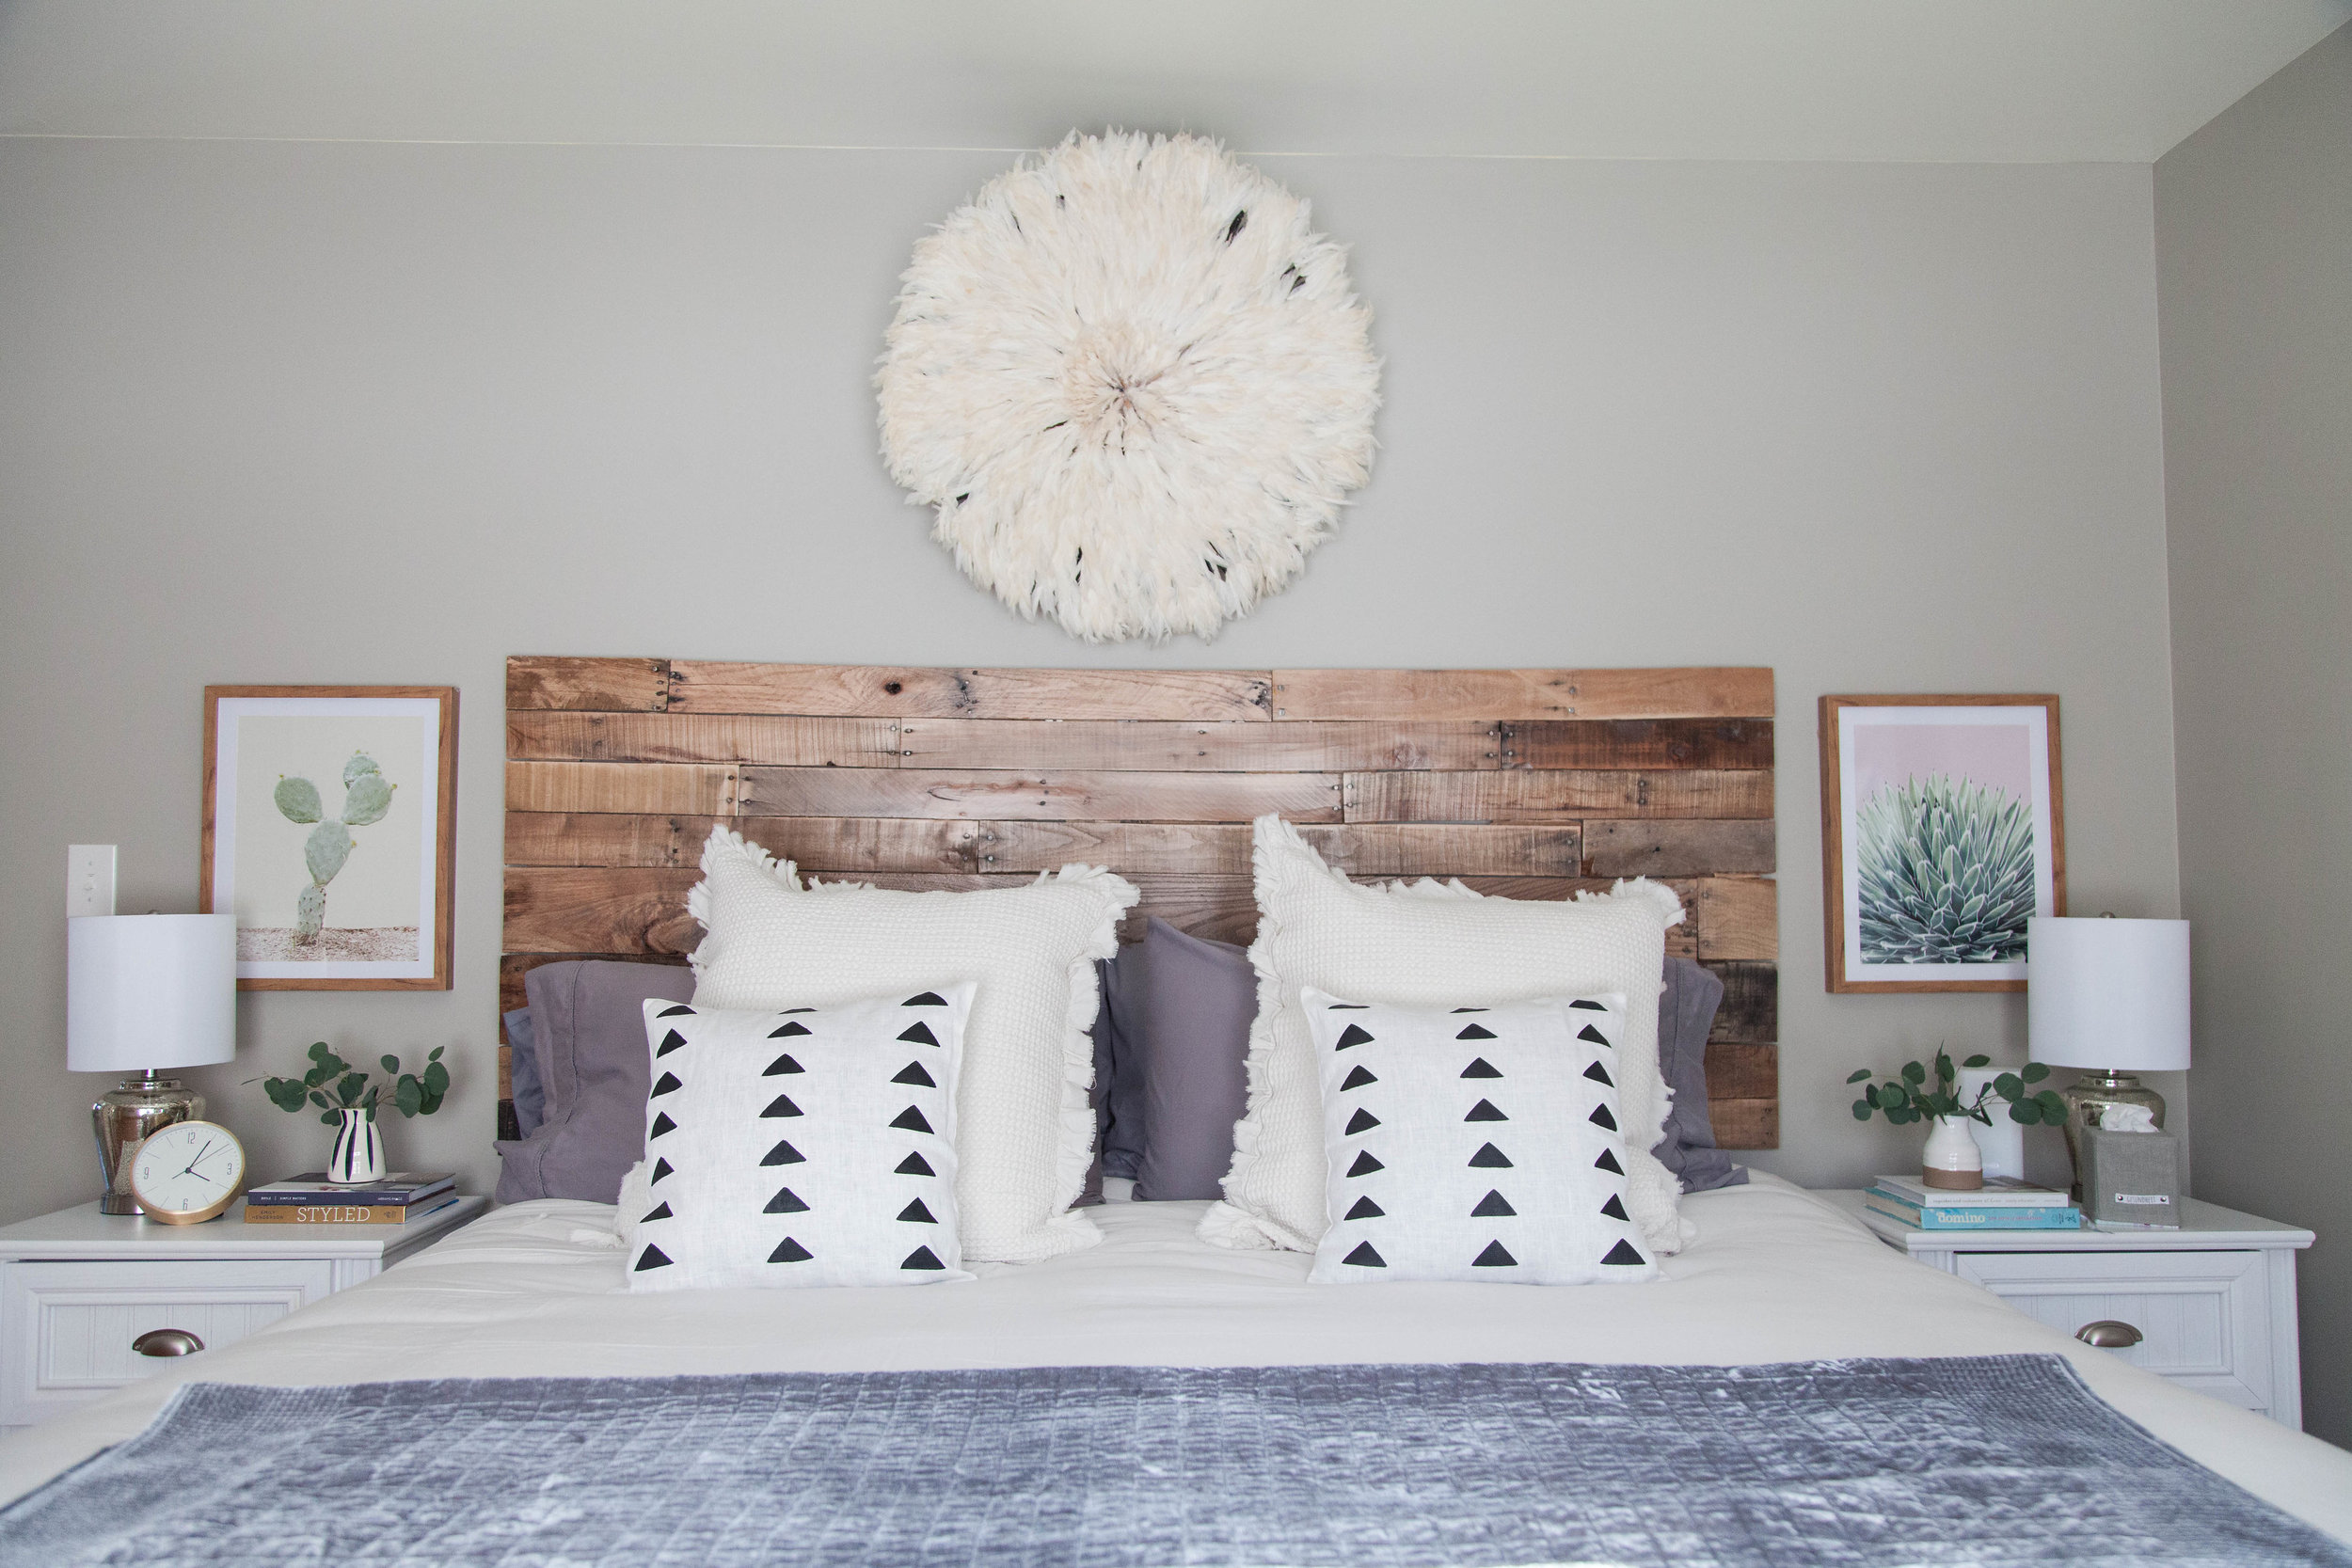 Guest bedroom with handmade wood headboard and mixed metals on nightstands in Hamilton, NY